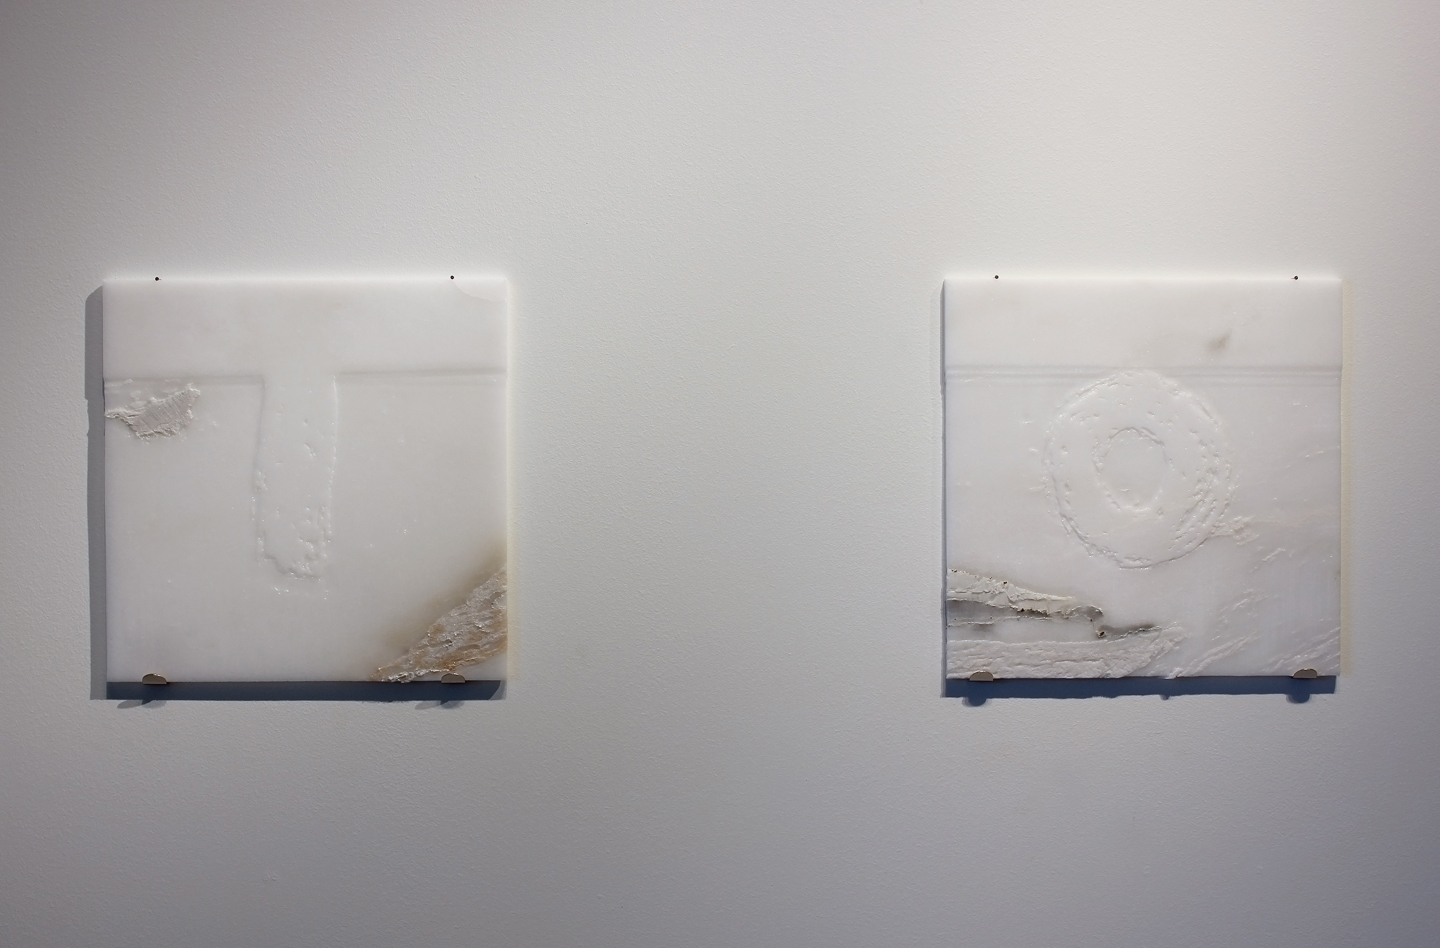 Imperative Immaterial Imagery - Marble Tiles After Hydrochloric Acid Bath